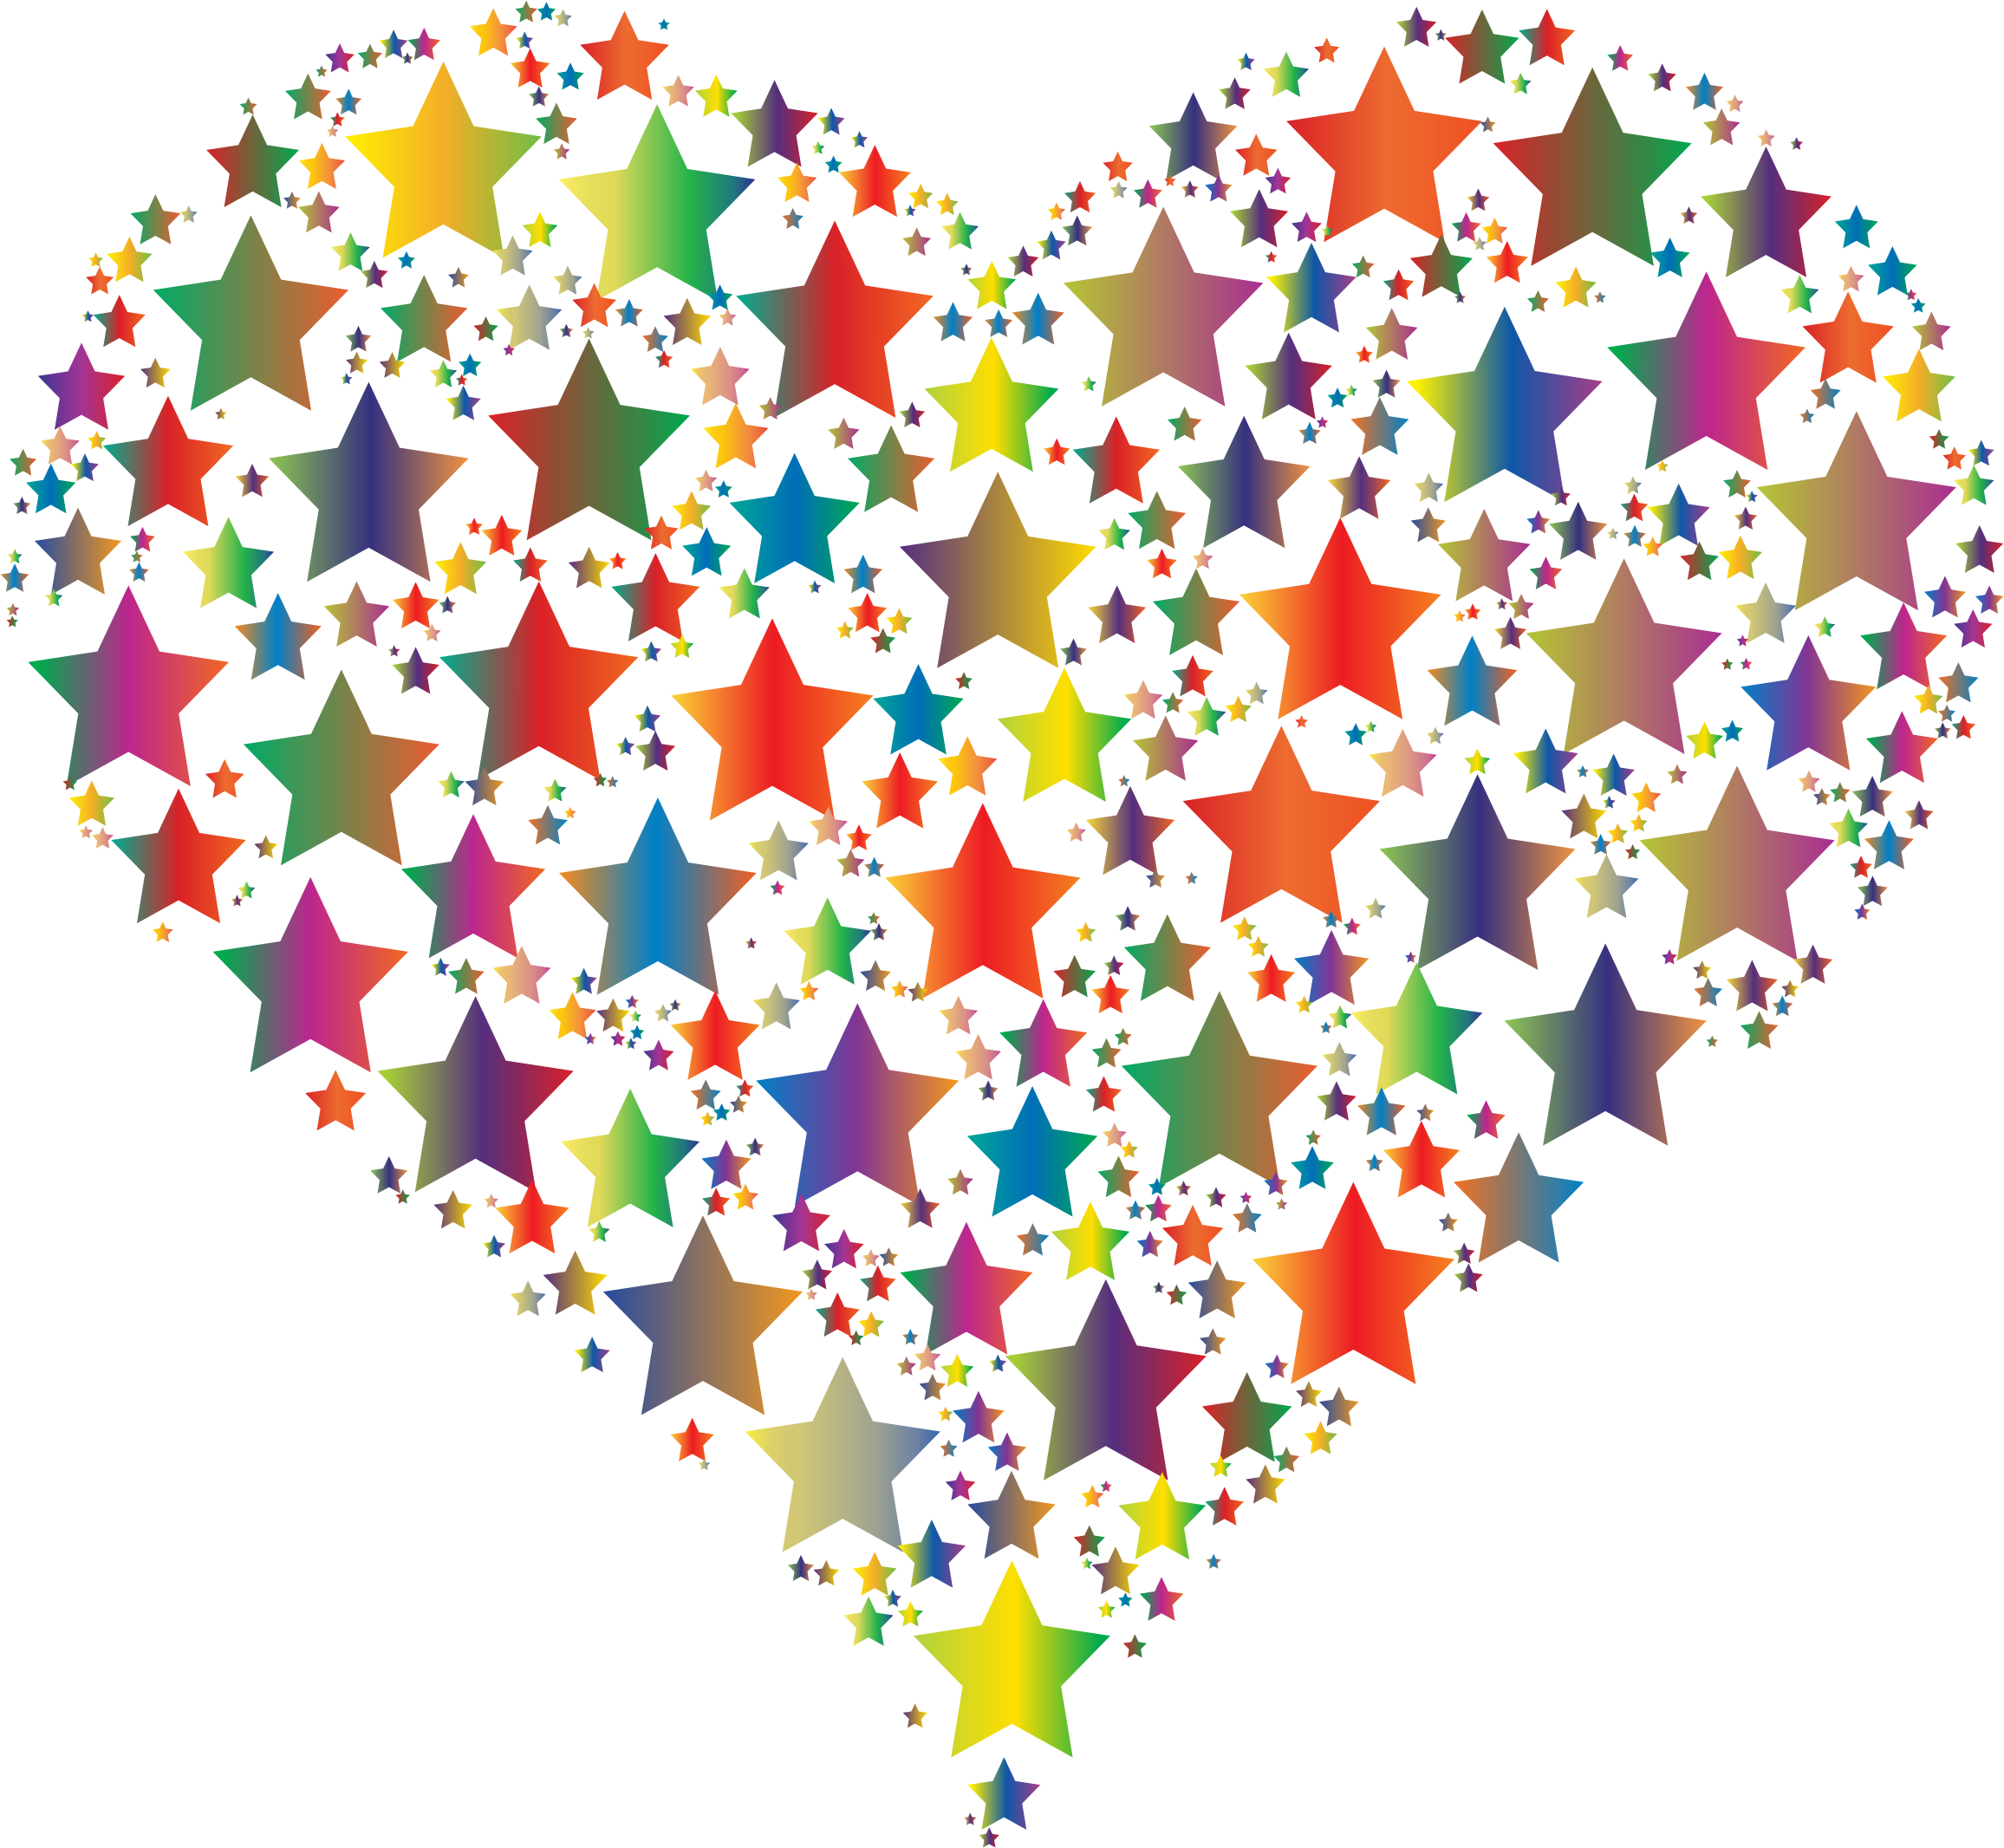 Colorful Heart Stars 5 by GDJ